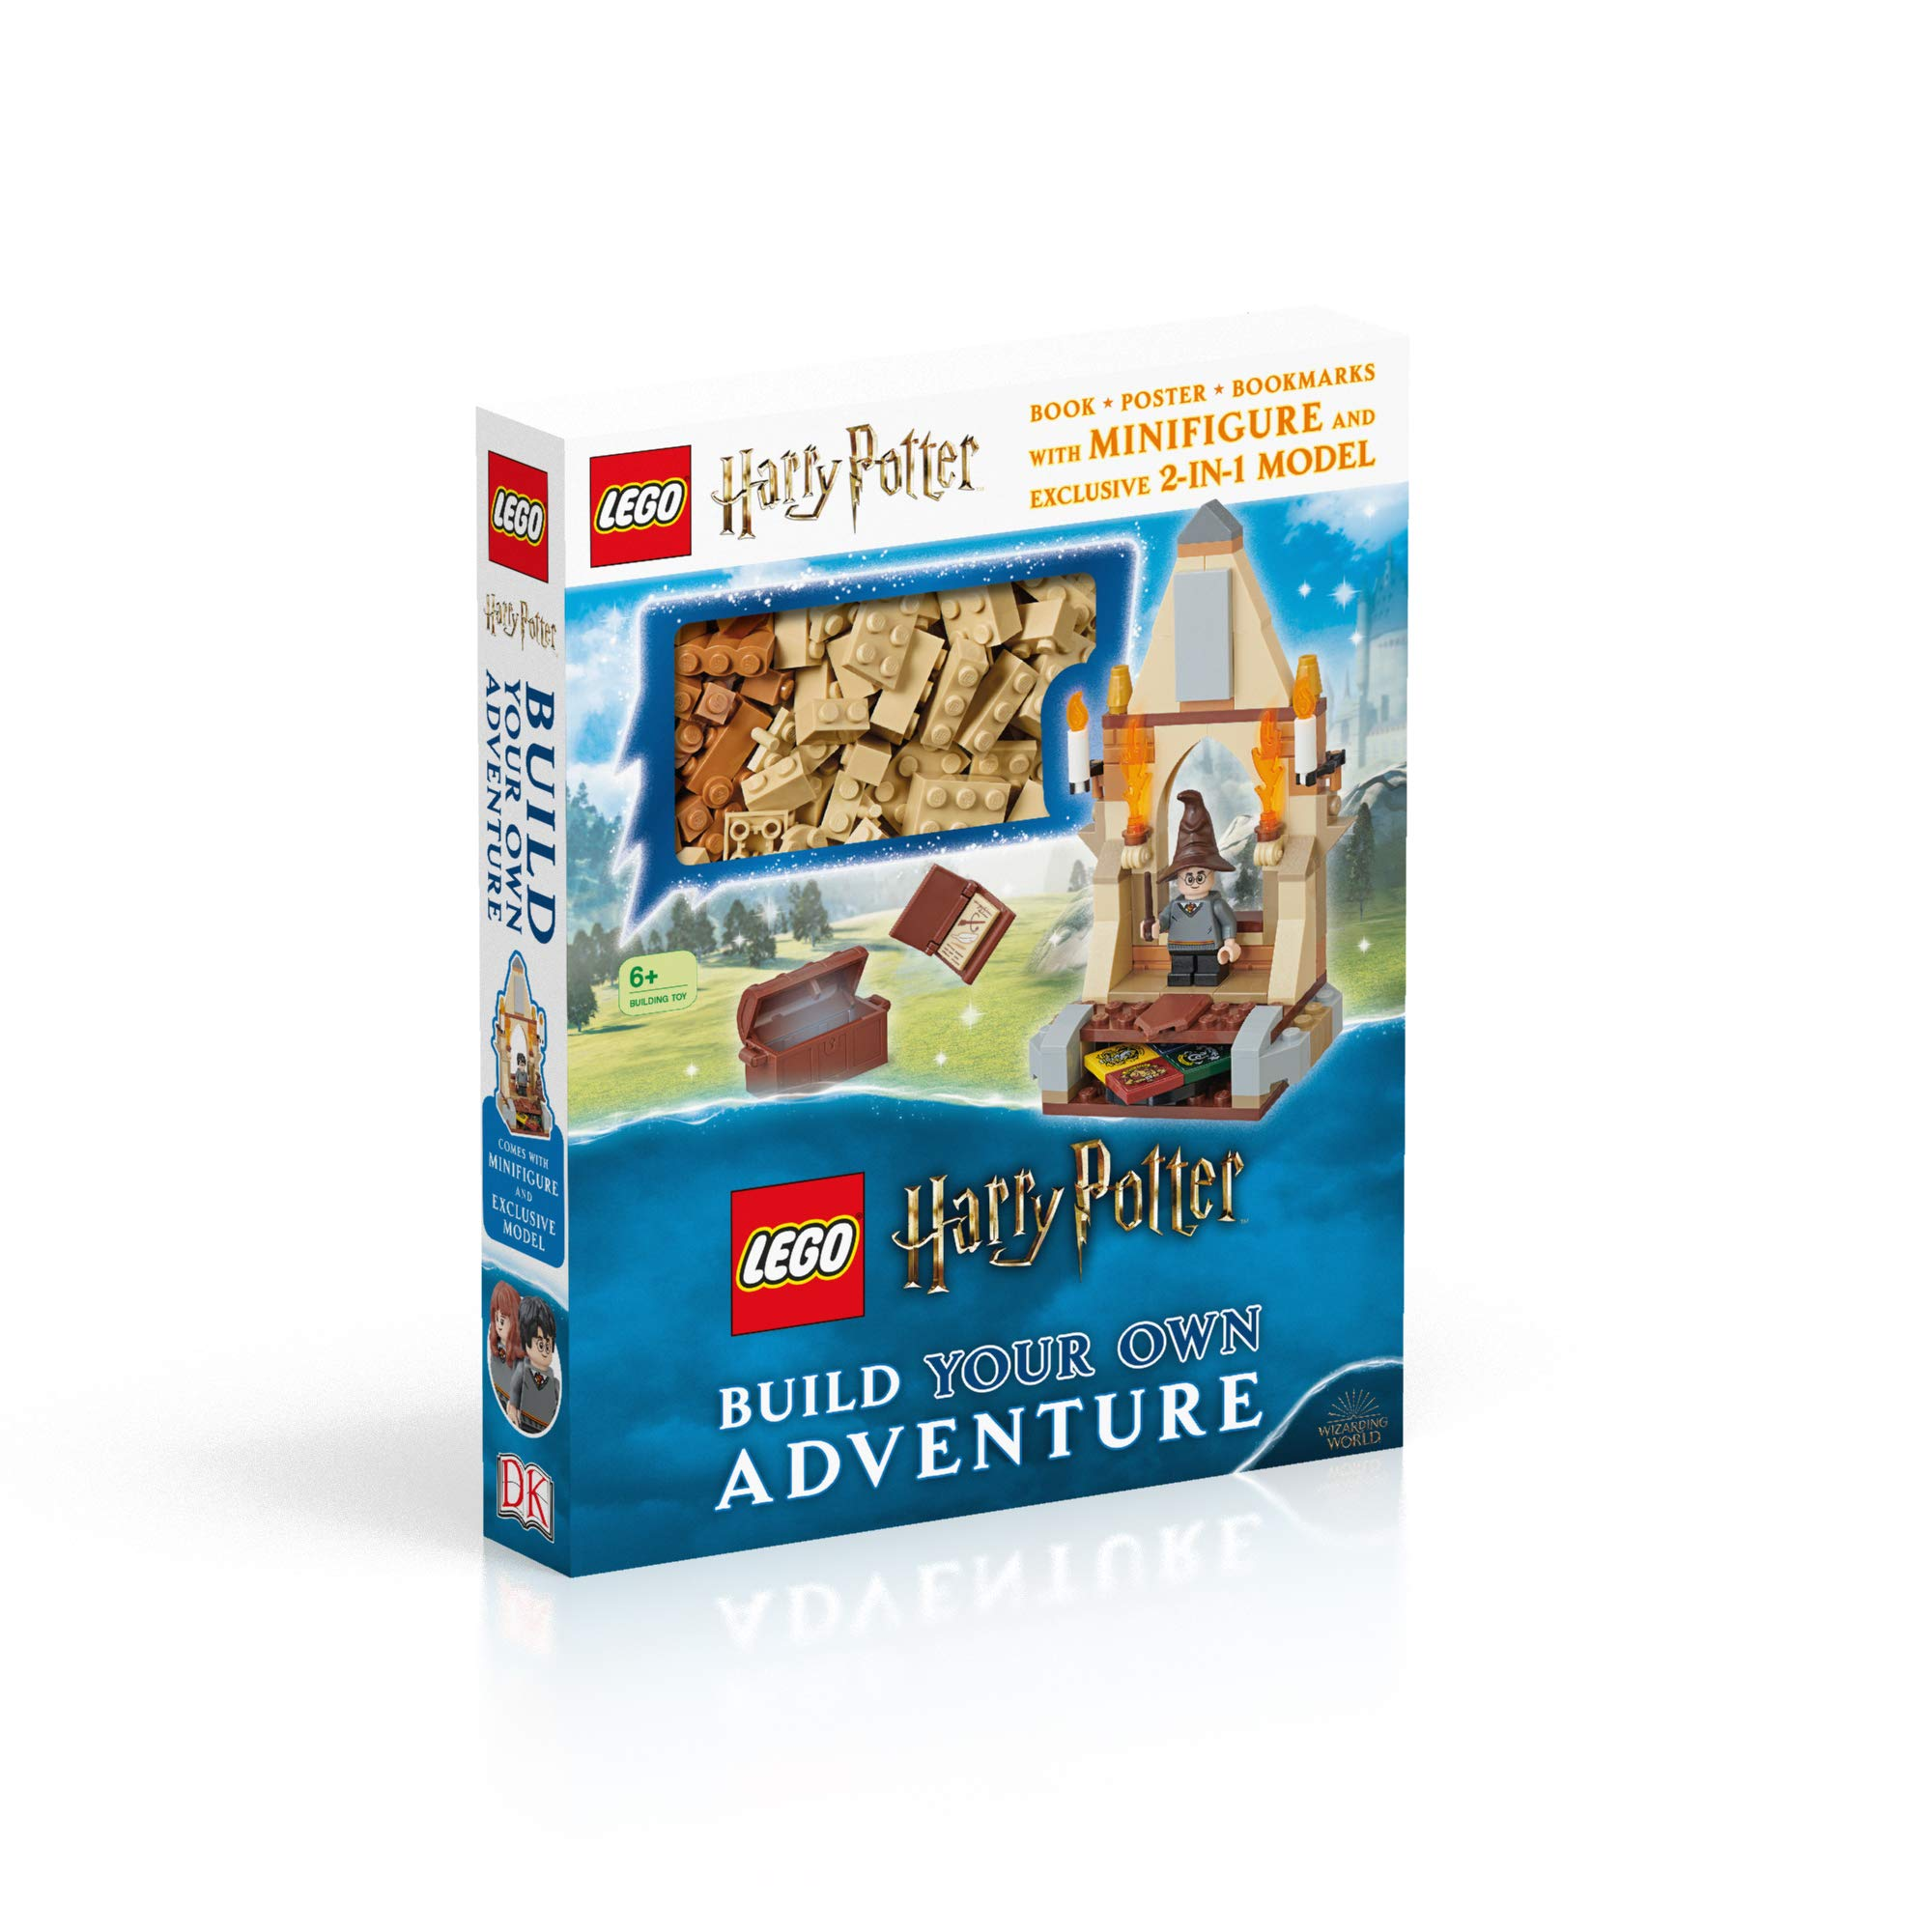 LEGO Harry Potter Build Your Own Adventure book will be available on July 4, 2019.